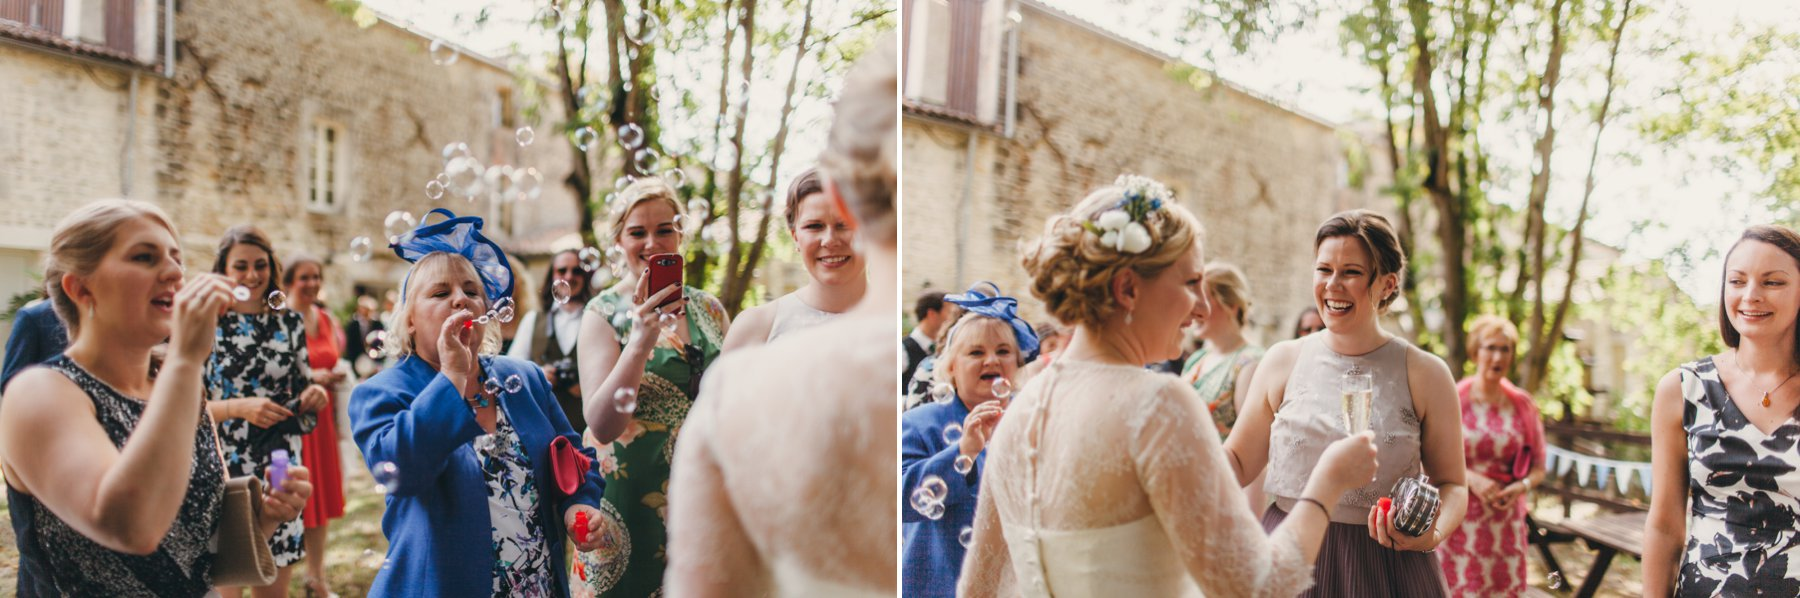 petitmoulin_france_bordeaux_weddings_0056